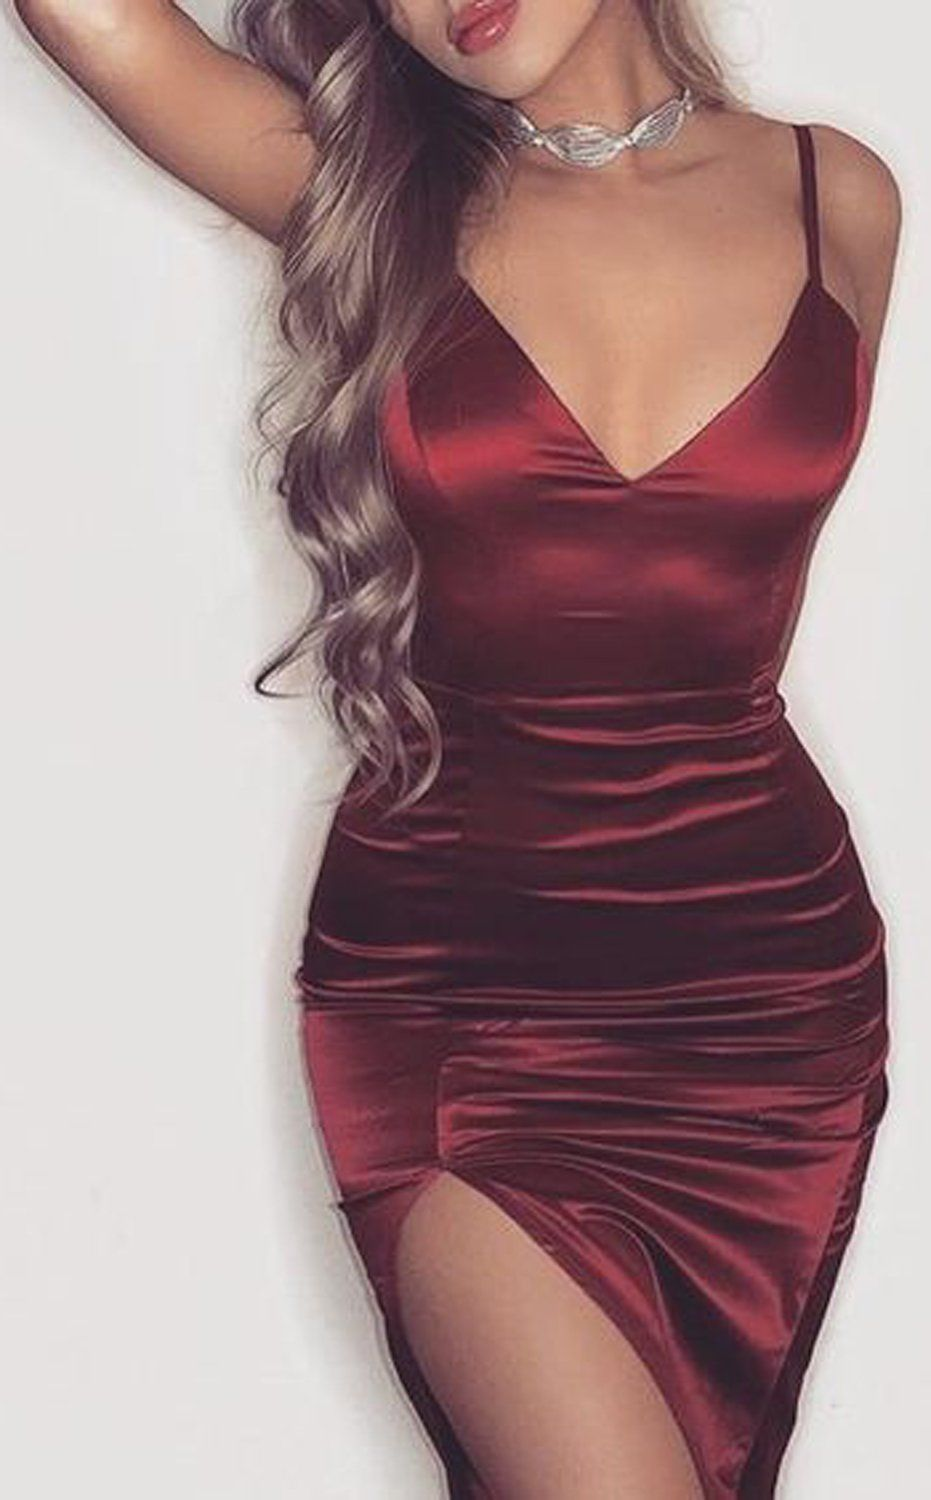 Clubbing Evening Cocktail Party Dressy Romantic Outfit Ideas for Women -  Burgundy Red Satin Mini Dress- día de san valentín Outfit Ideas para  mujeres - www. 8f14d80e5